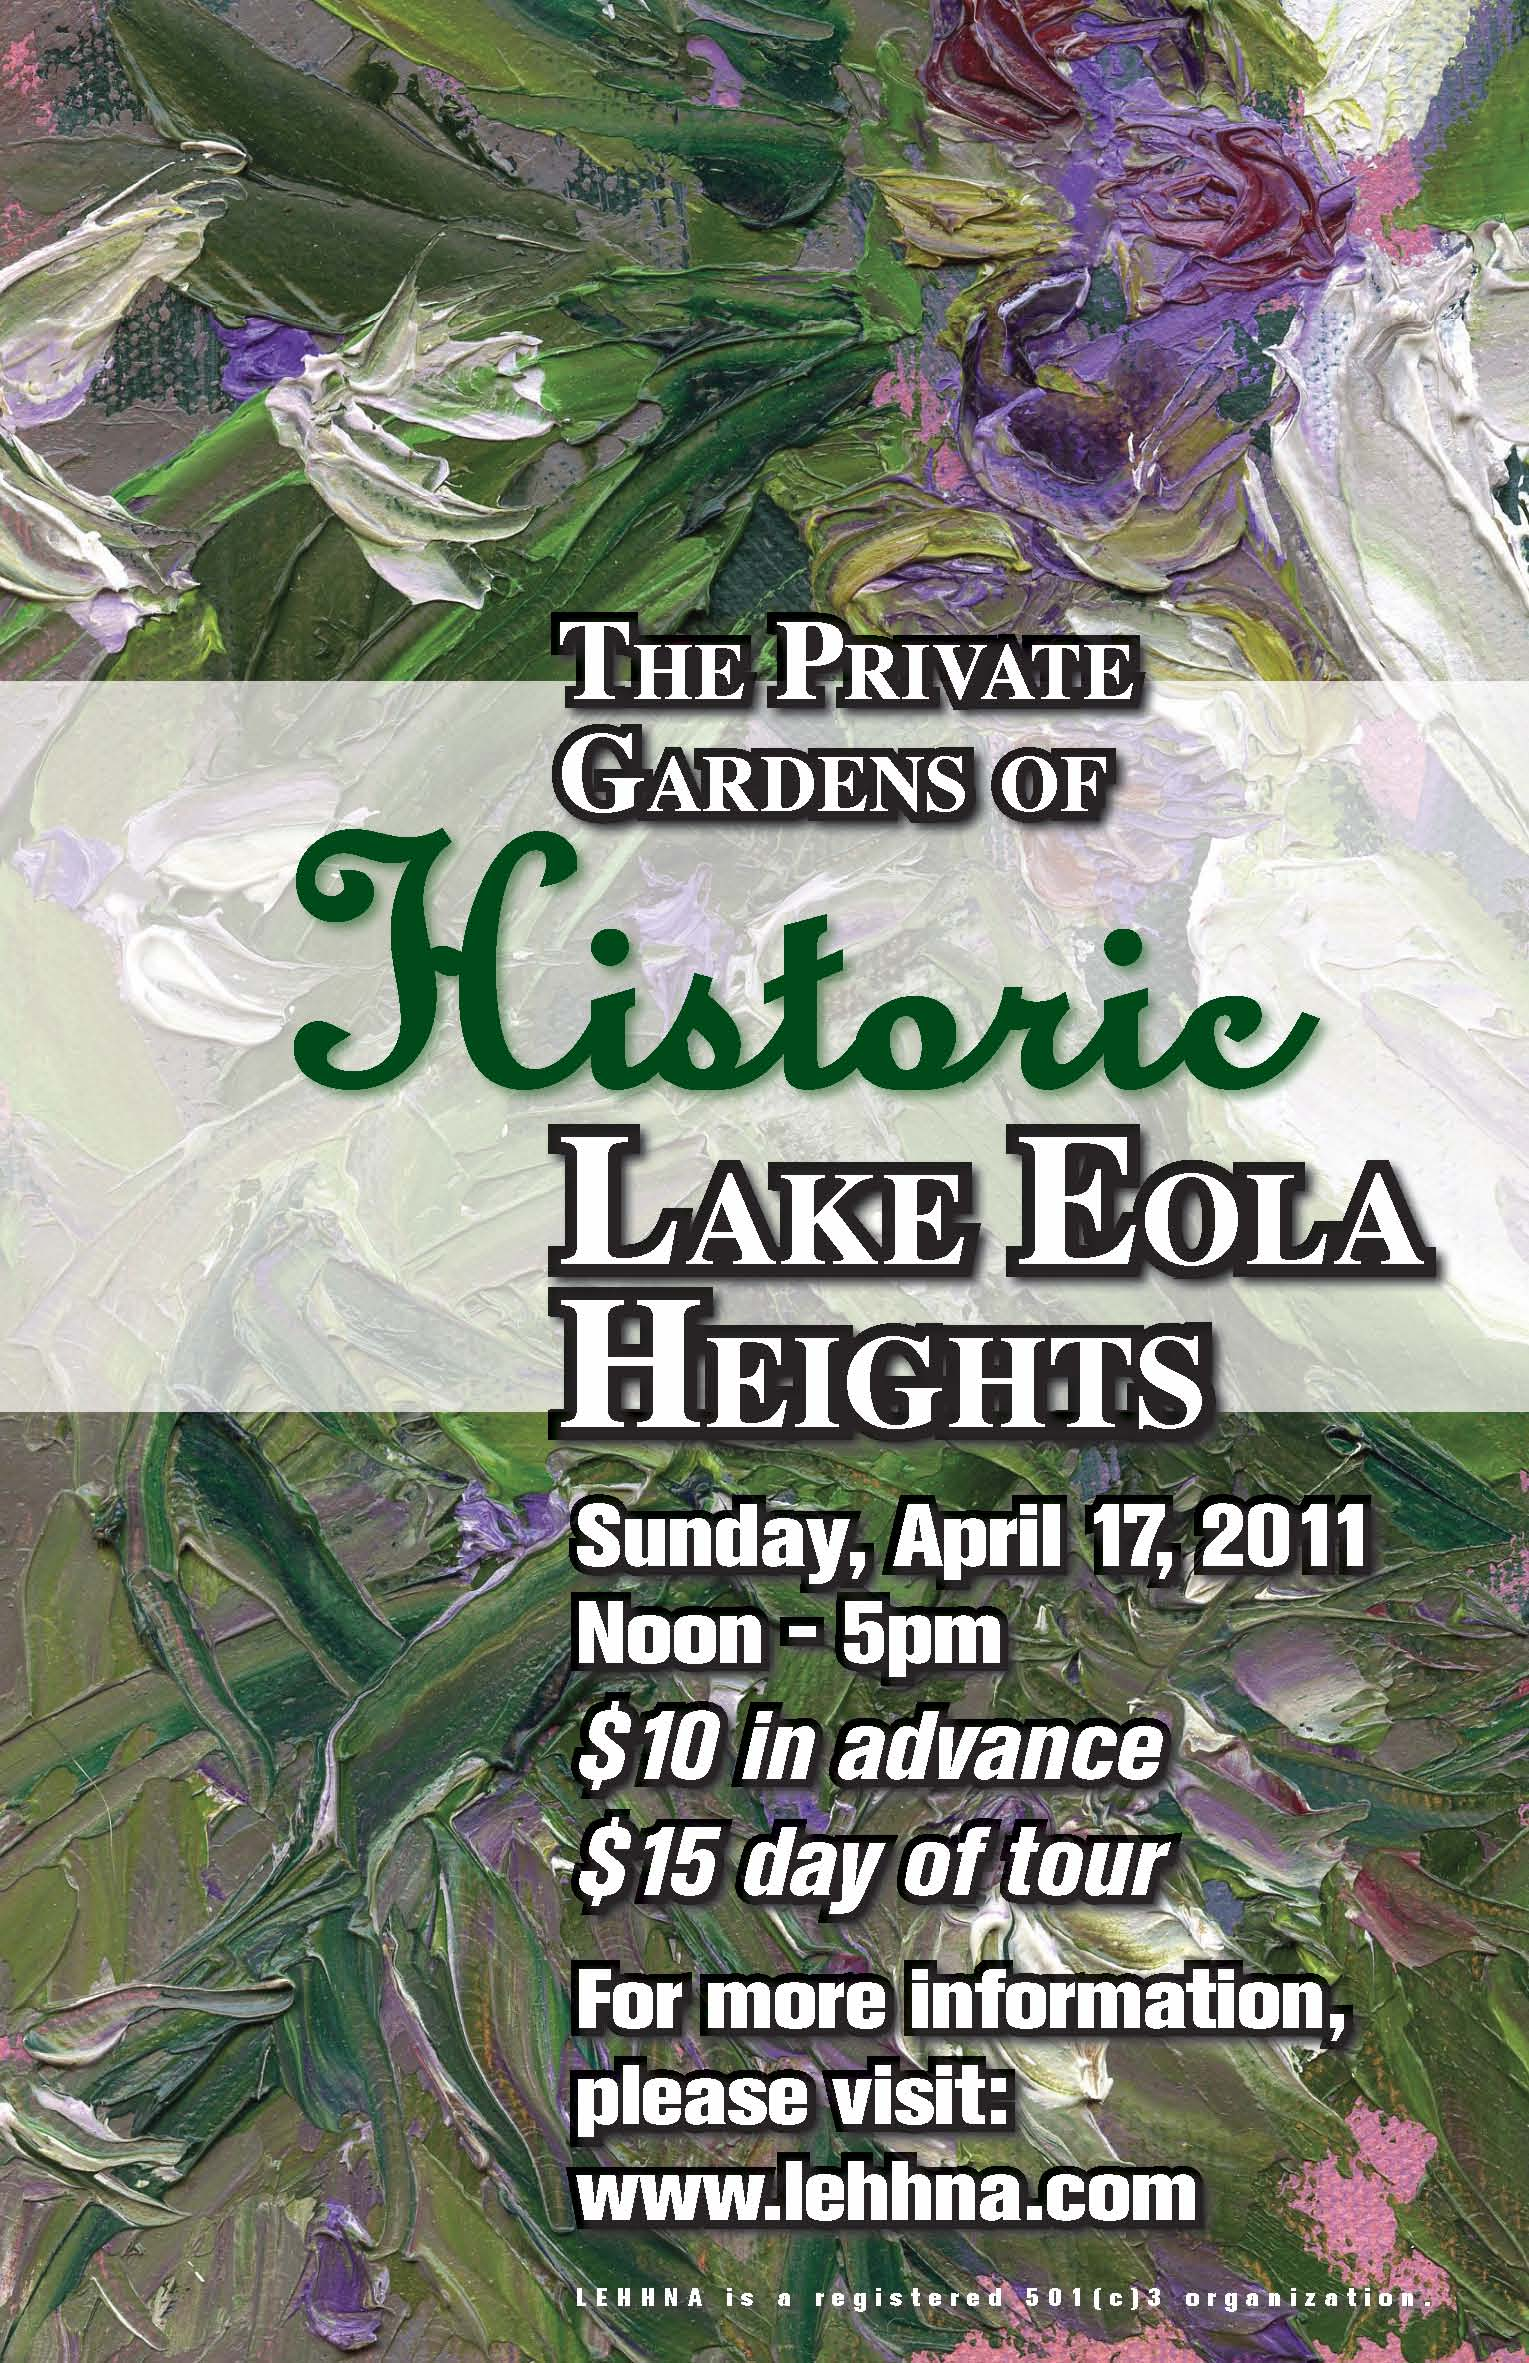 Garden Tour Fifty Shades Of Green: Lake Eola Heights Garden Tour Is This Sunday!